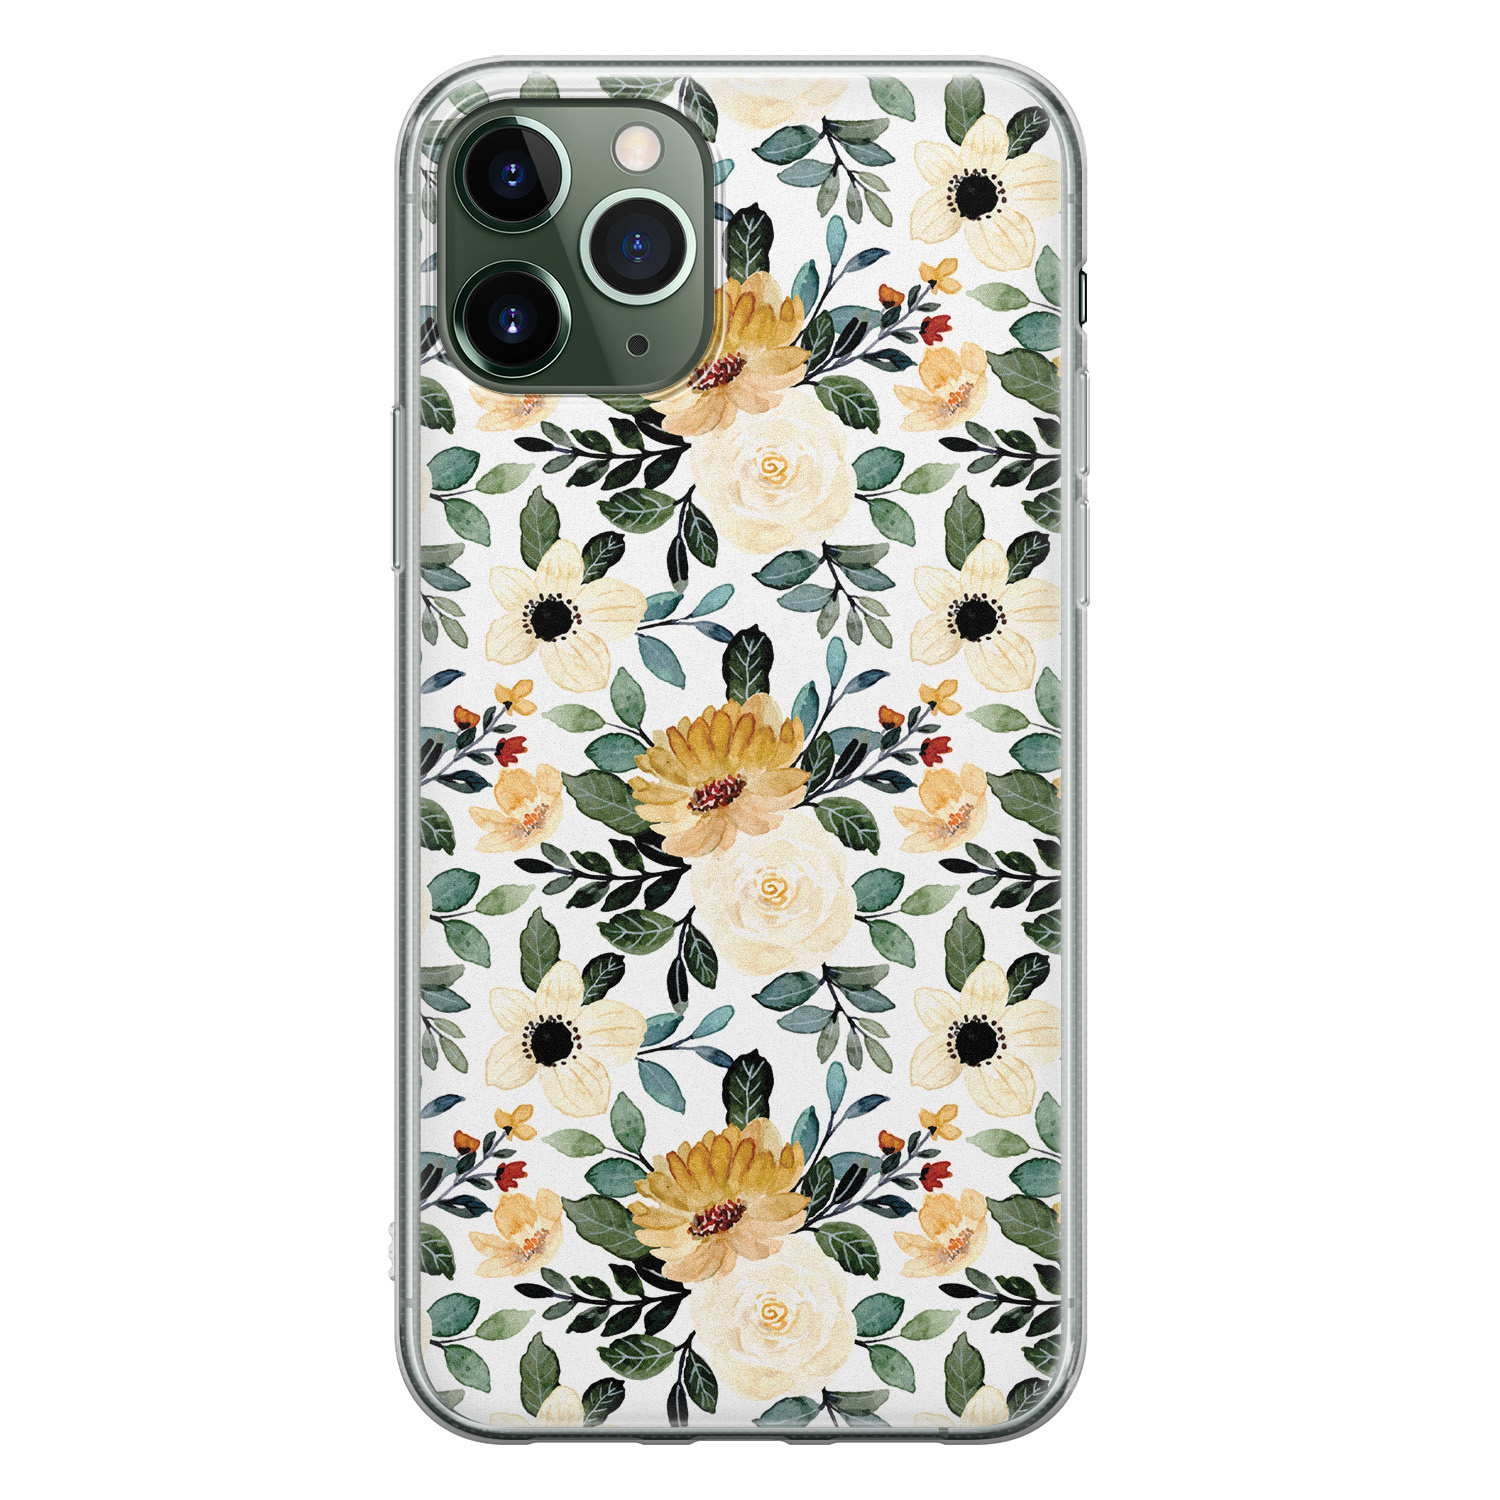 iPhone 11 Pro Max siliconen hoesje - Lovely flower